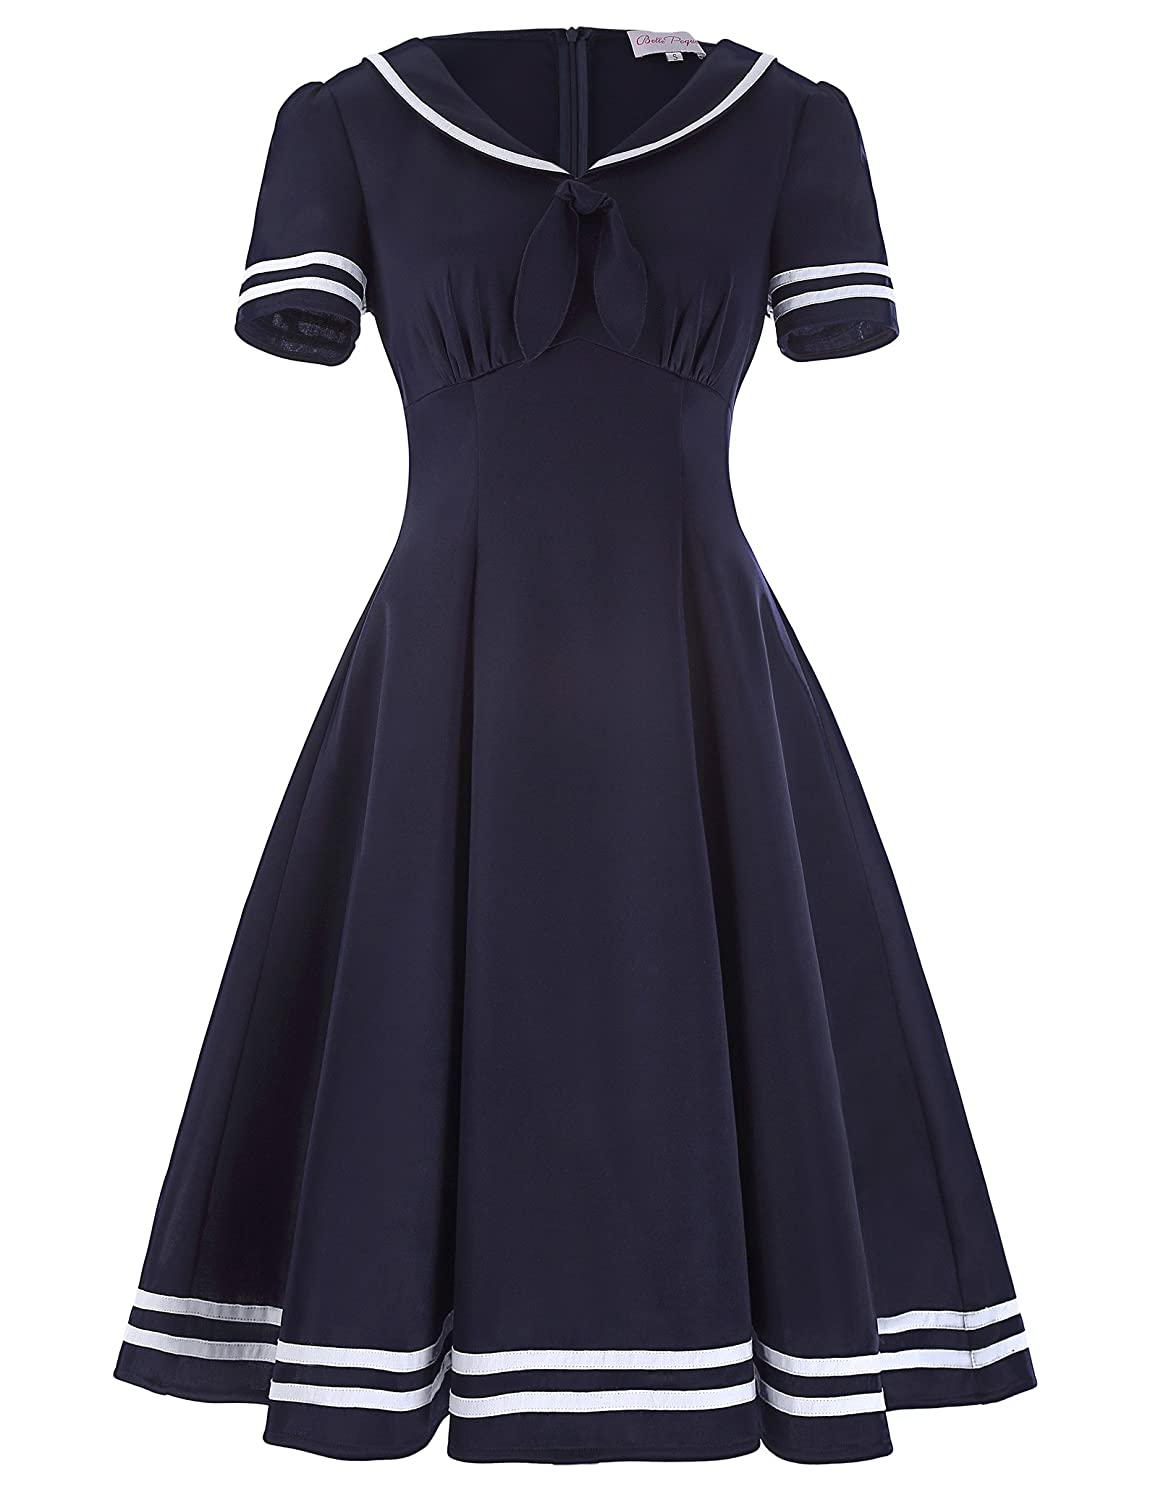 1950s Housewife Dress | 50s Day Dresses Belle Poque Womens Retro Sailor Dress Short Sleeve Cocktail Party Swing Dress $29.99 AT vintagedancer.com